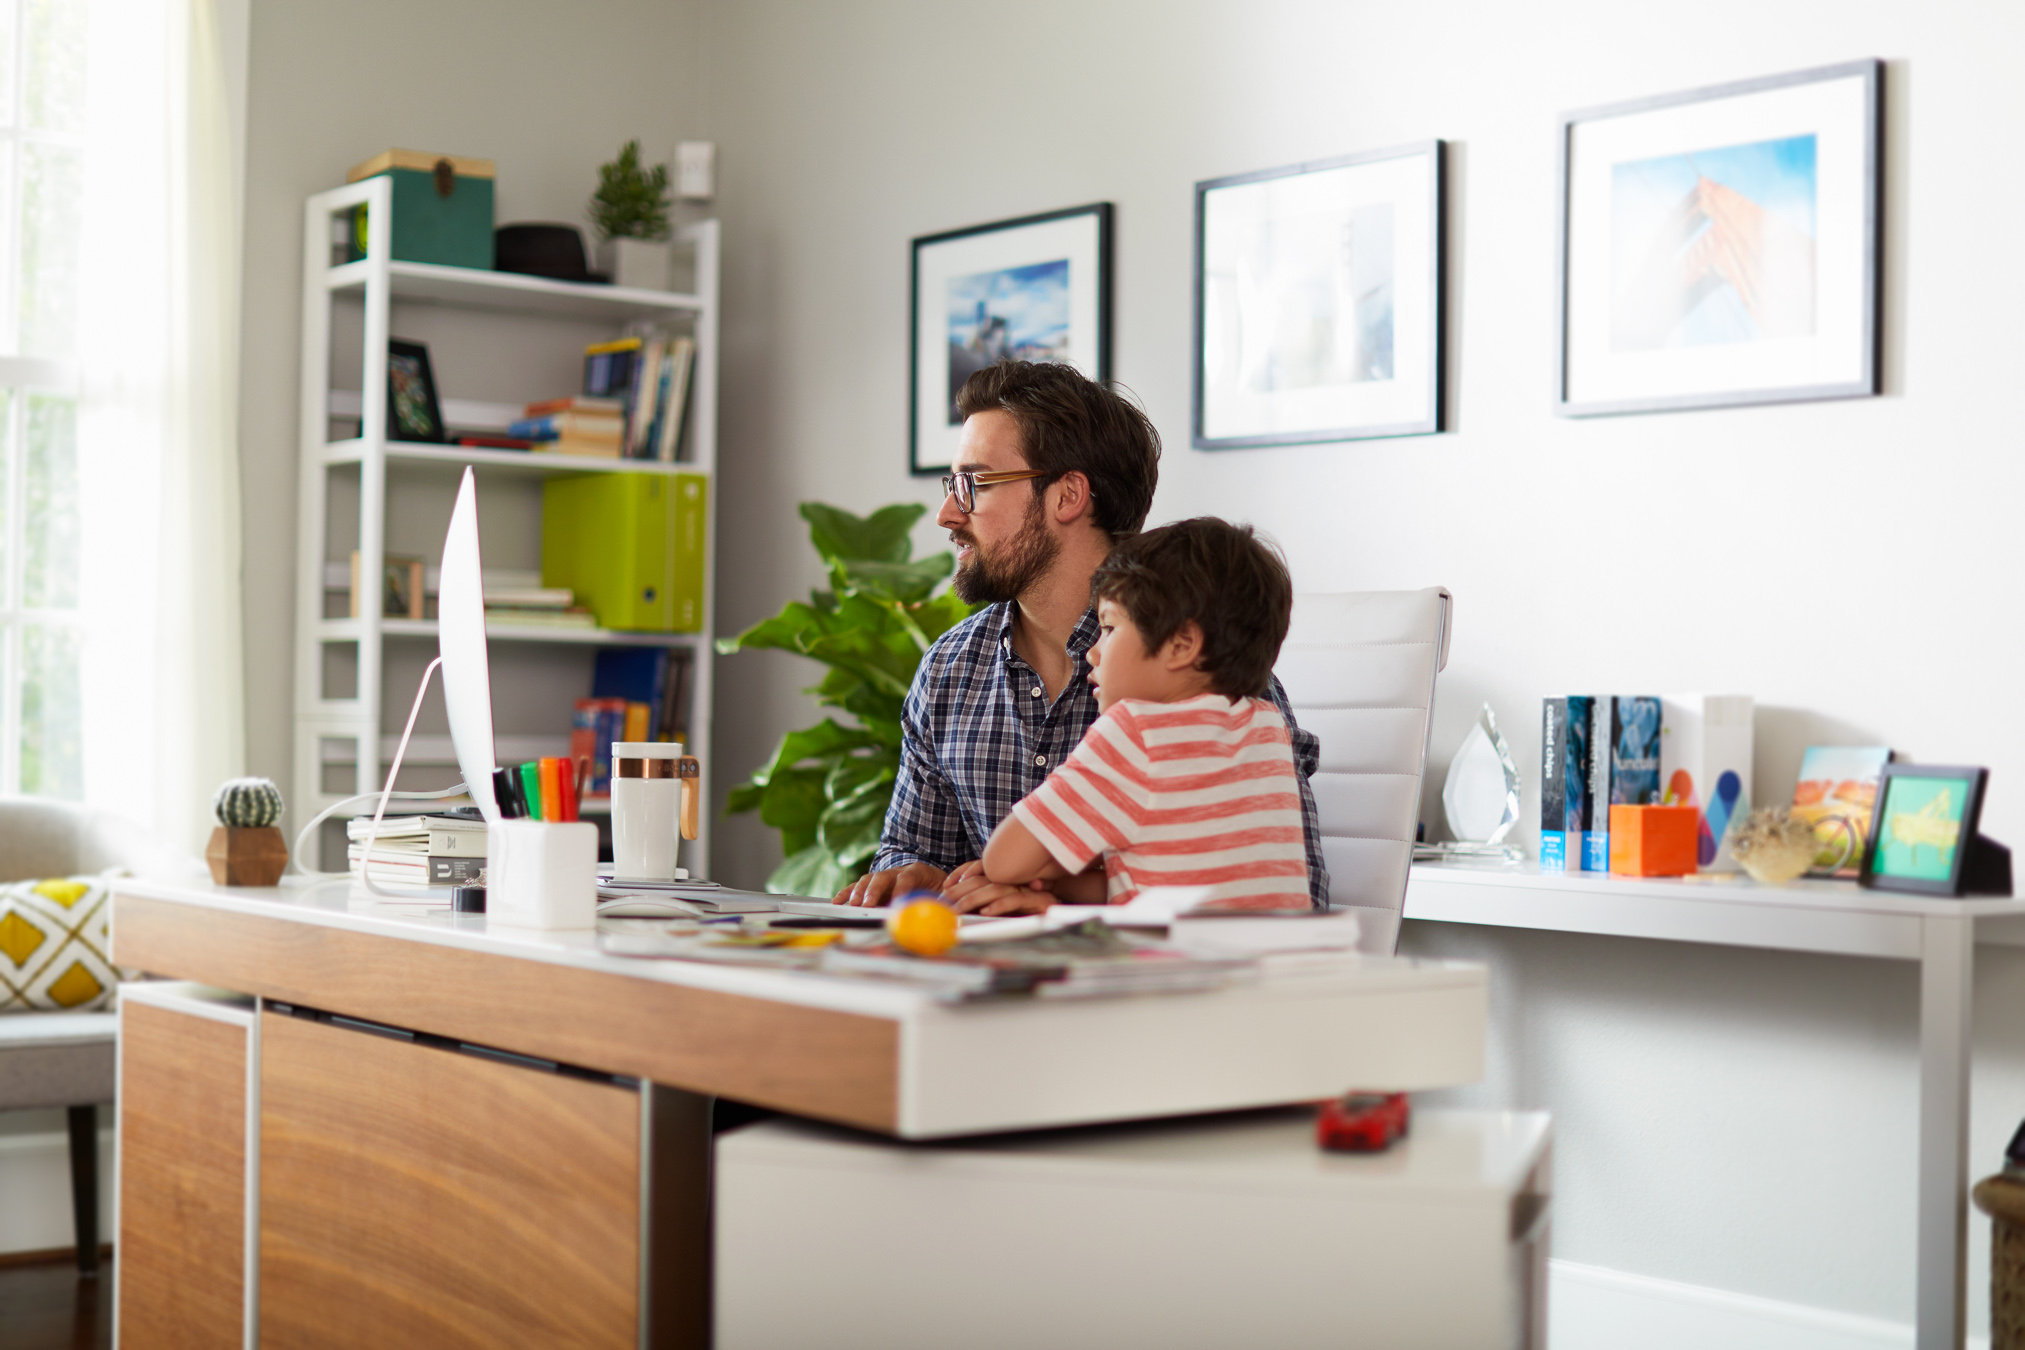 ShotN_dad_son_office_107_WARM_MORE_CONTRAST-2